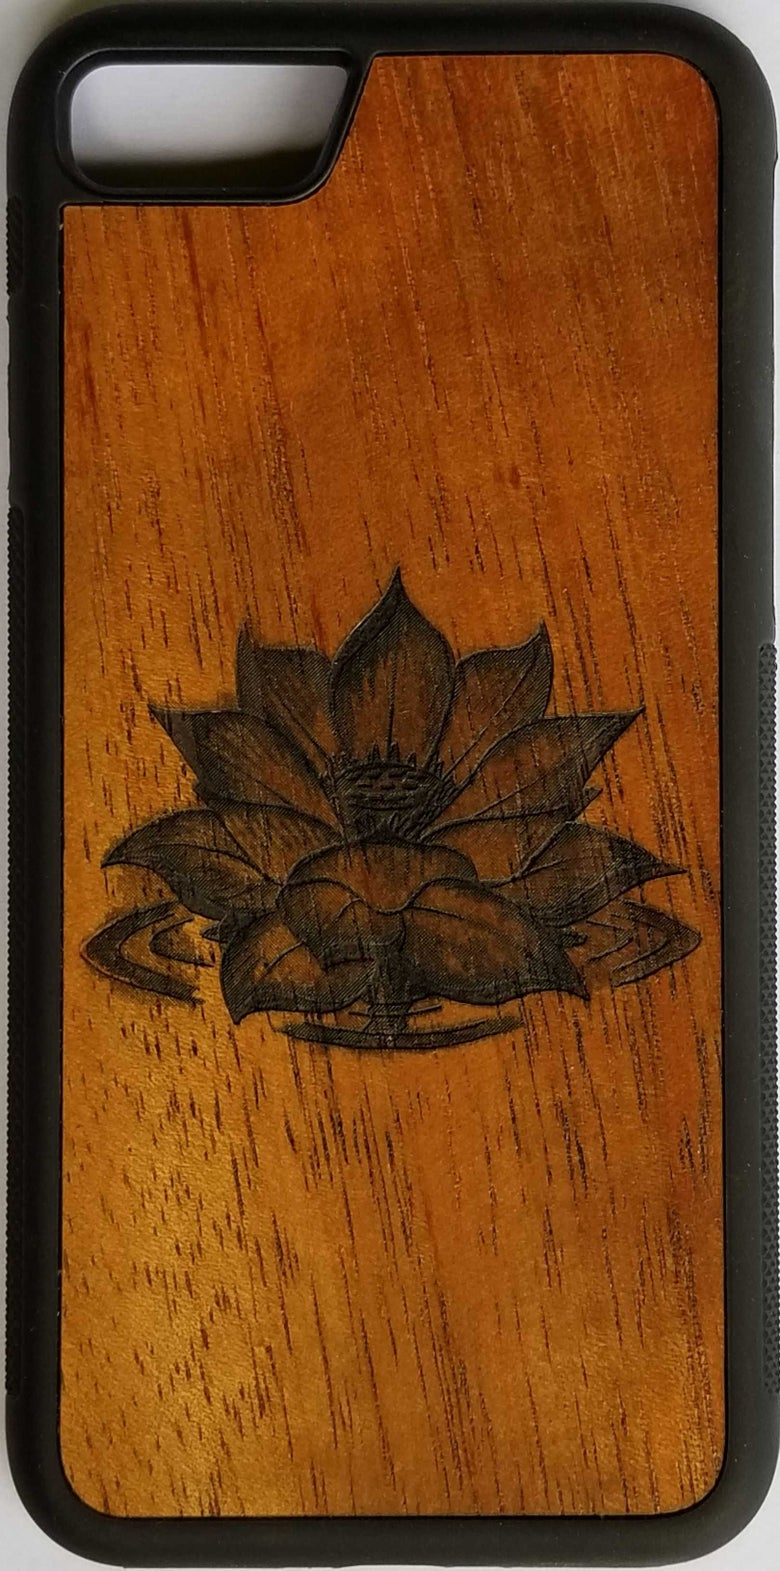 Image of Lotus Koa wood phone case